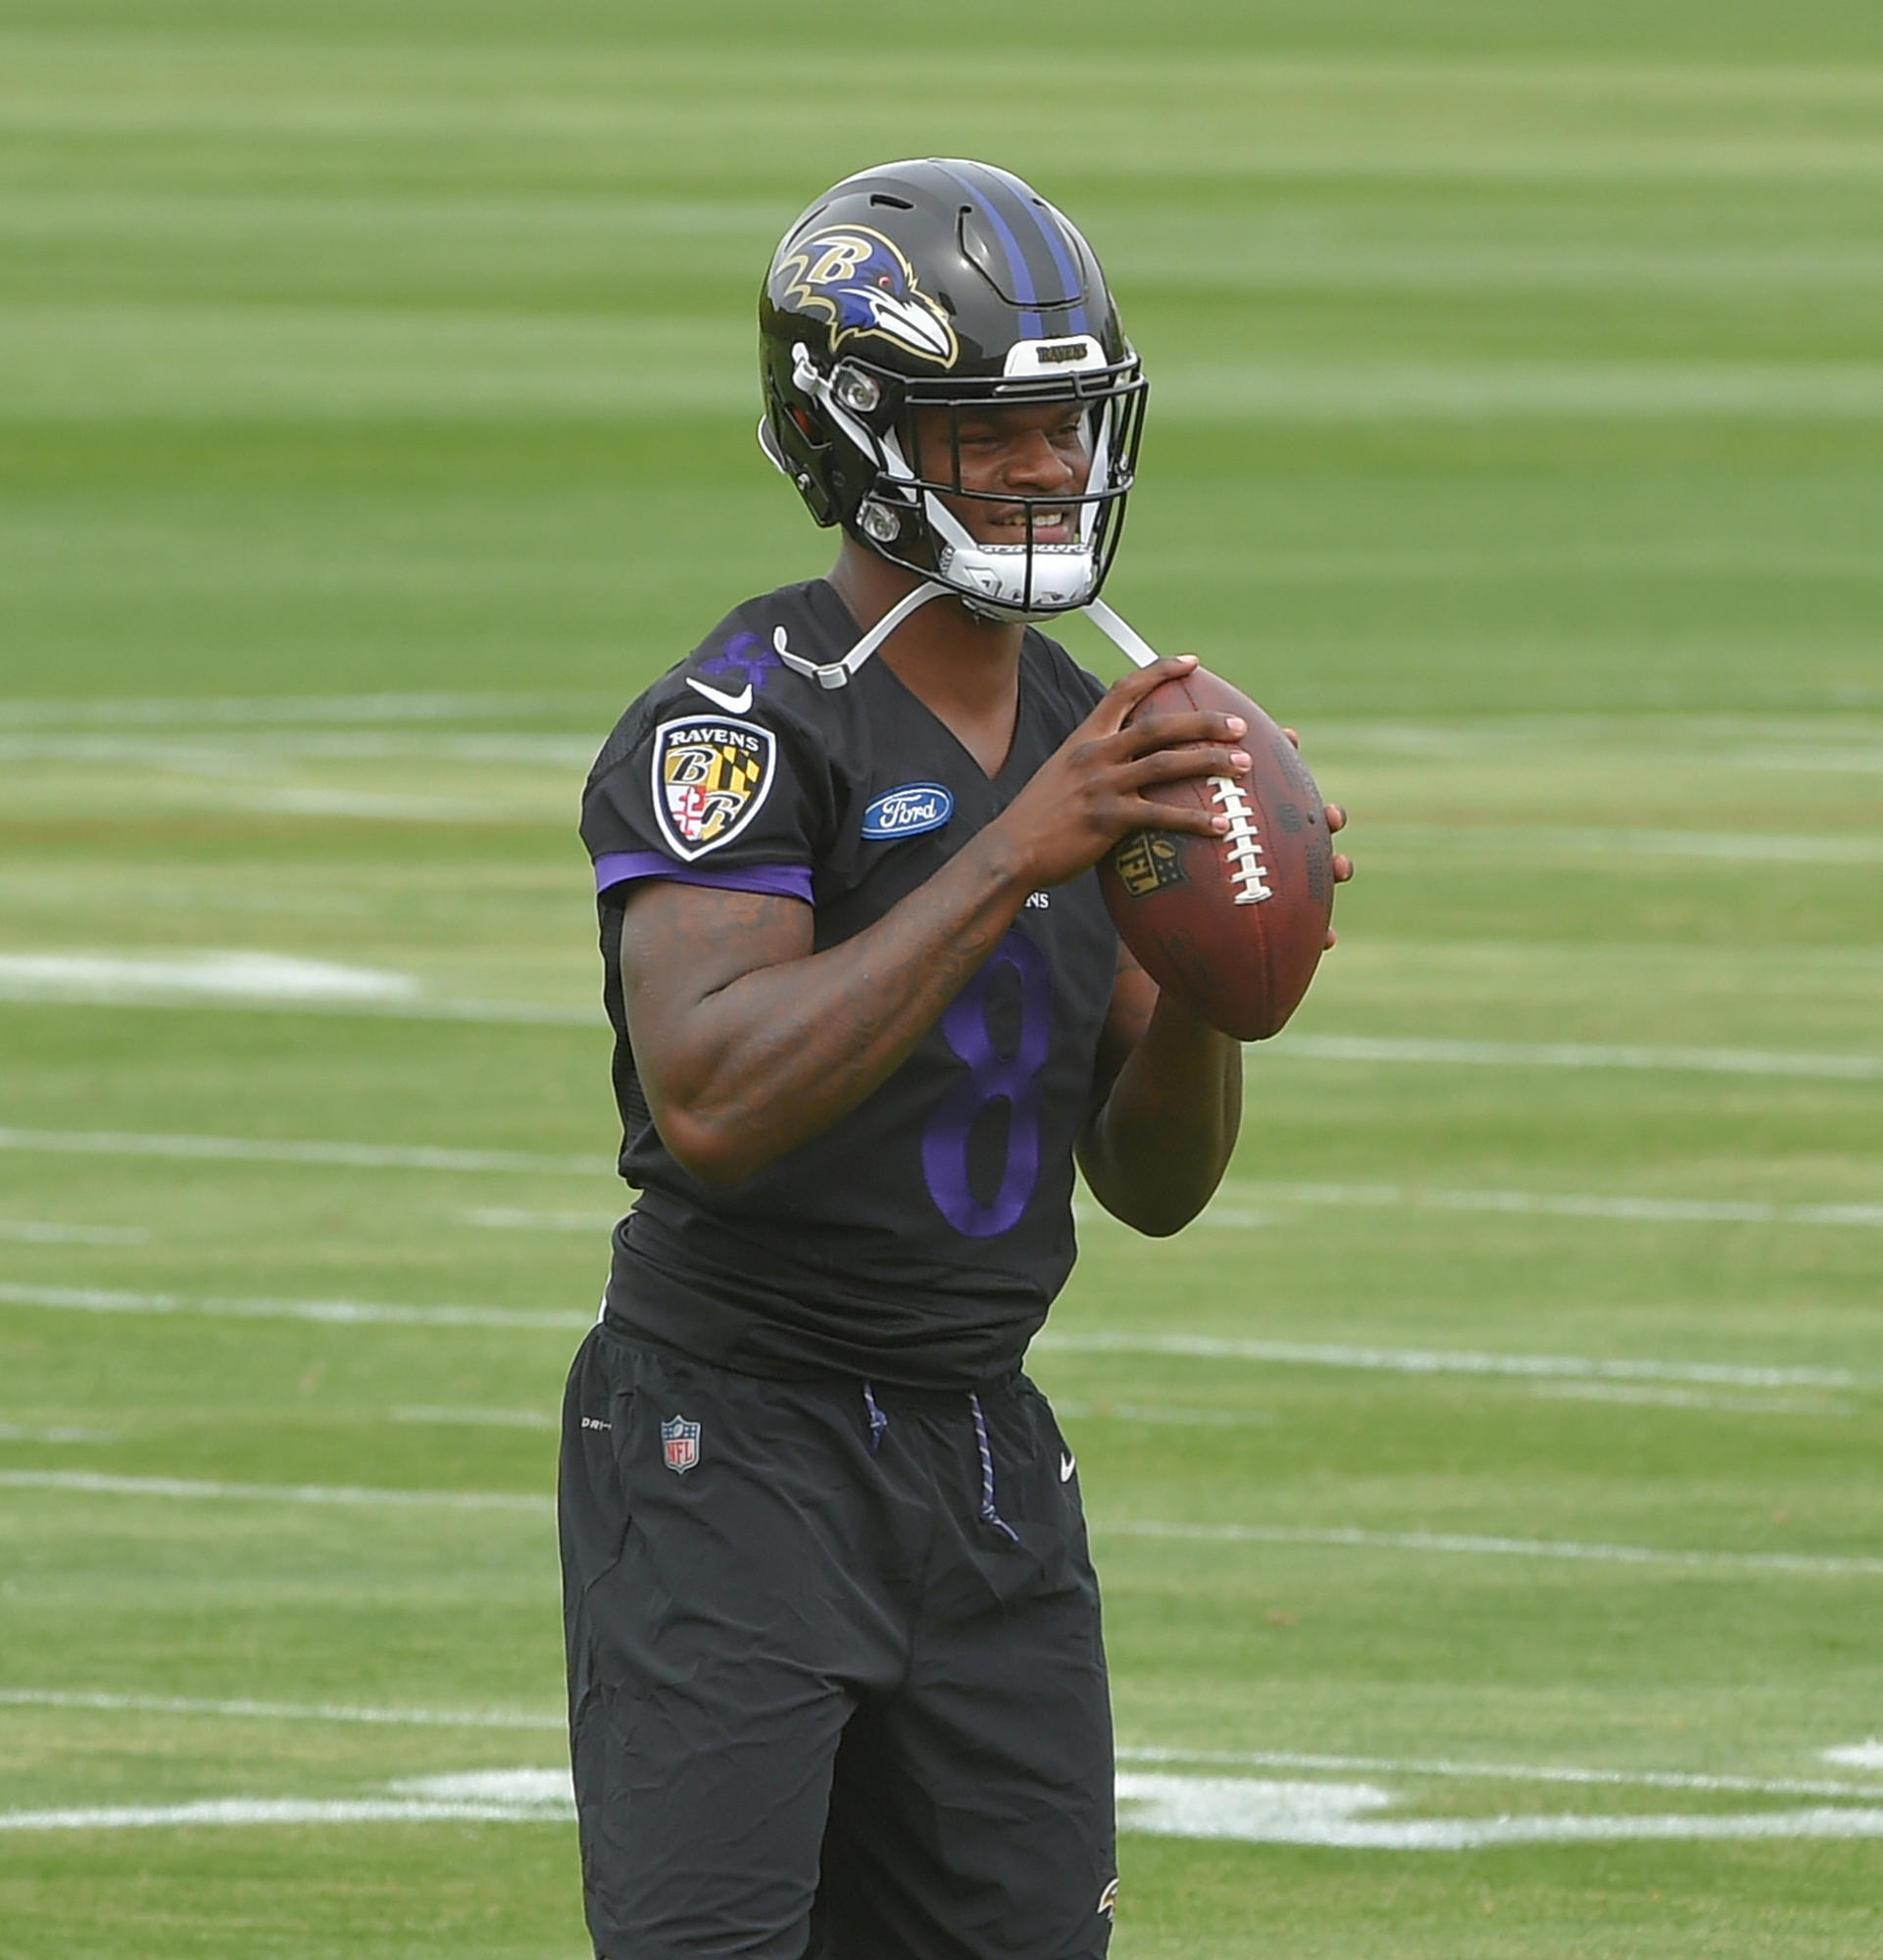 Ravens first-round pick Lamar Jackson signs his rookie contract - Baltimore  Sun 19aef0422